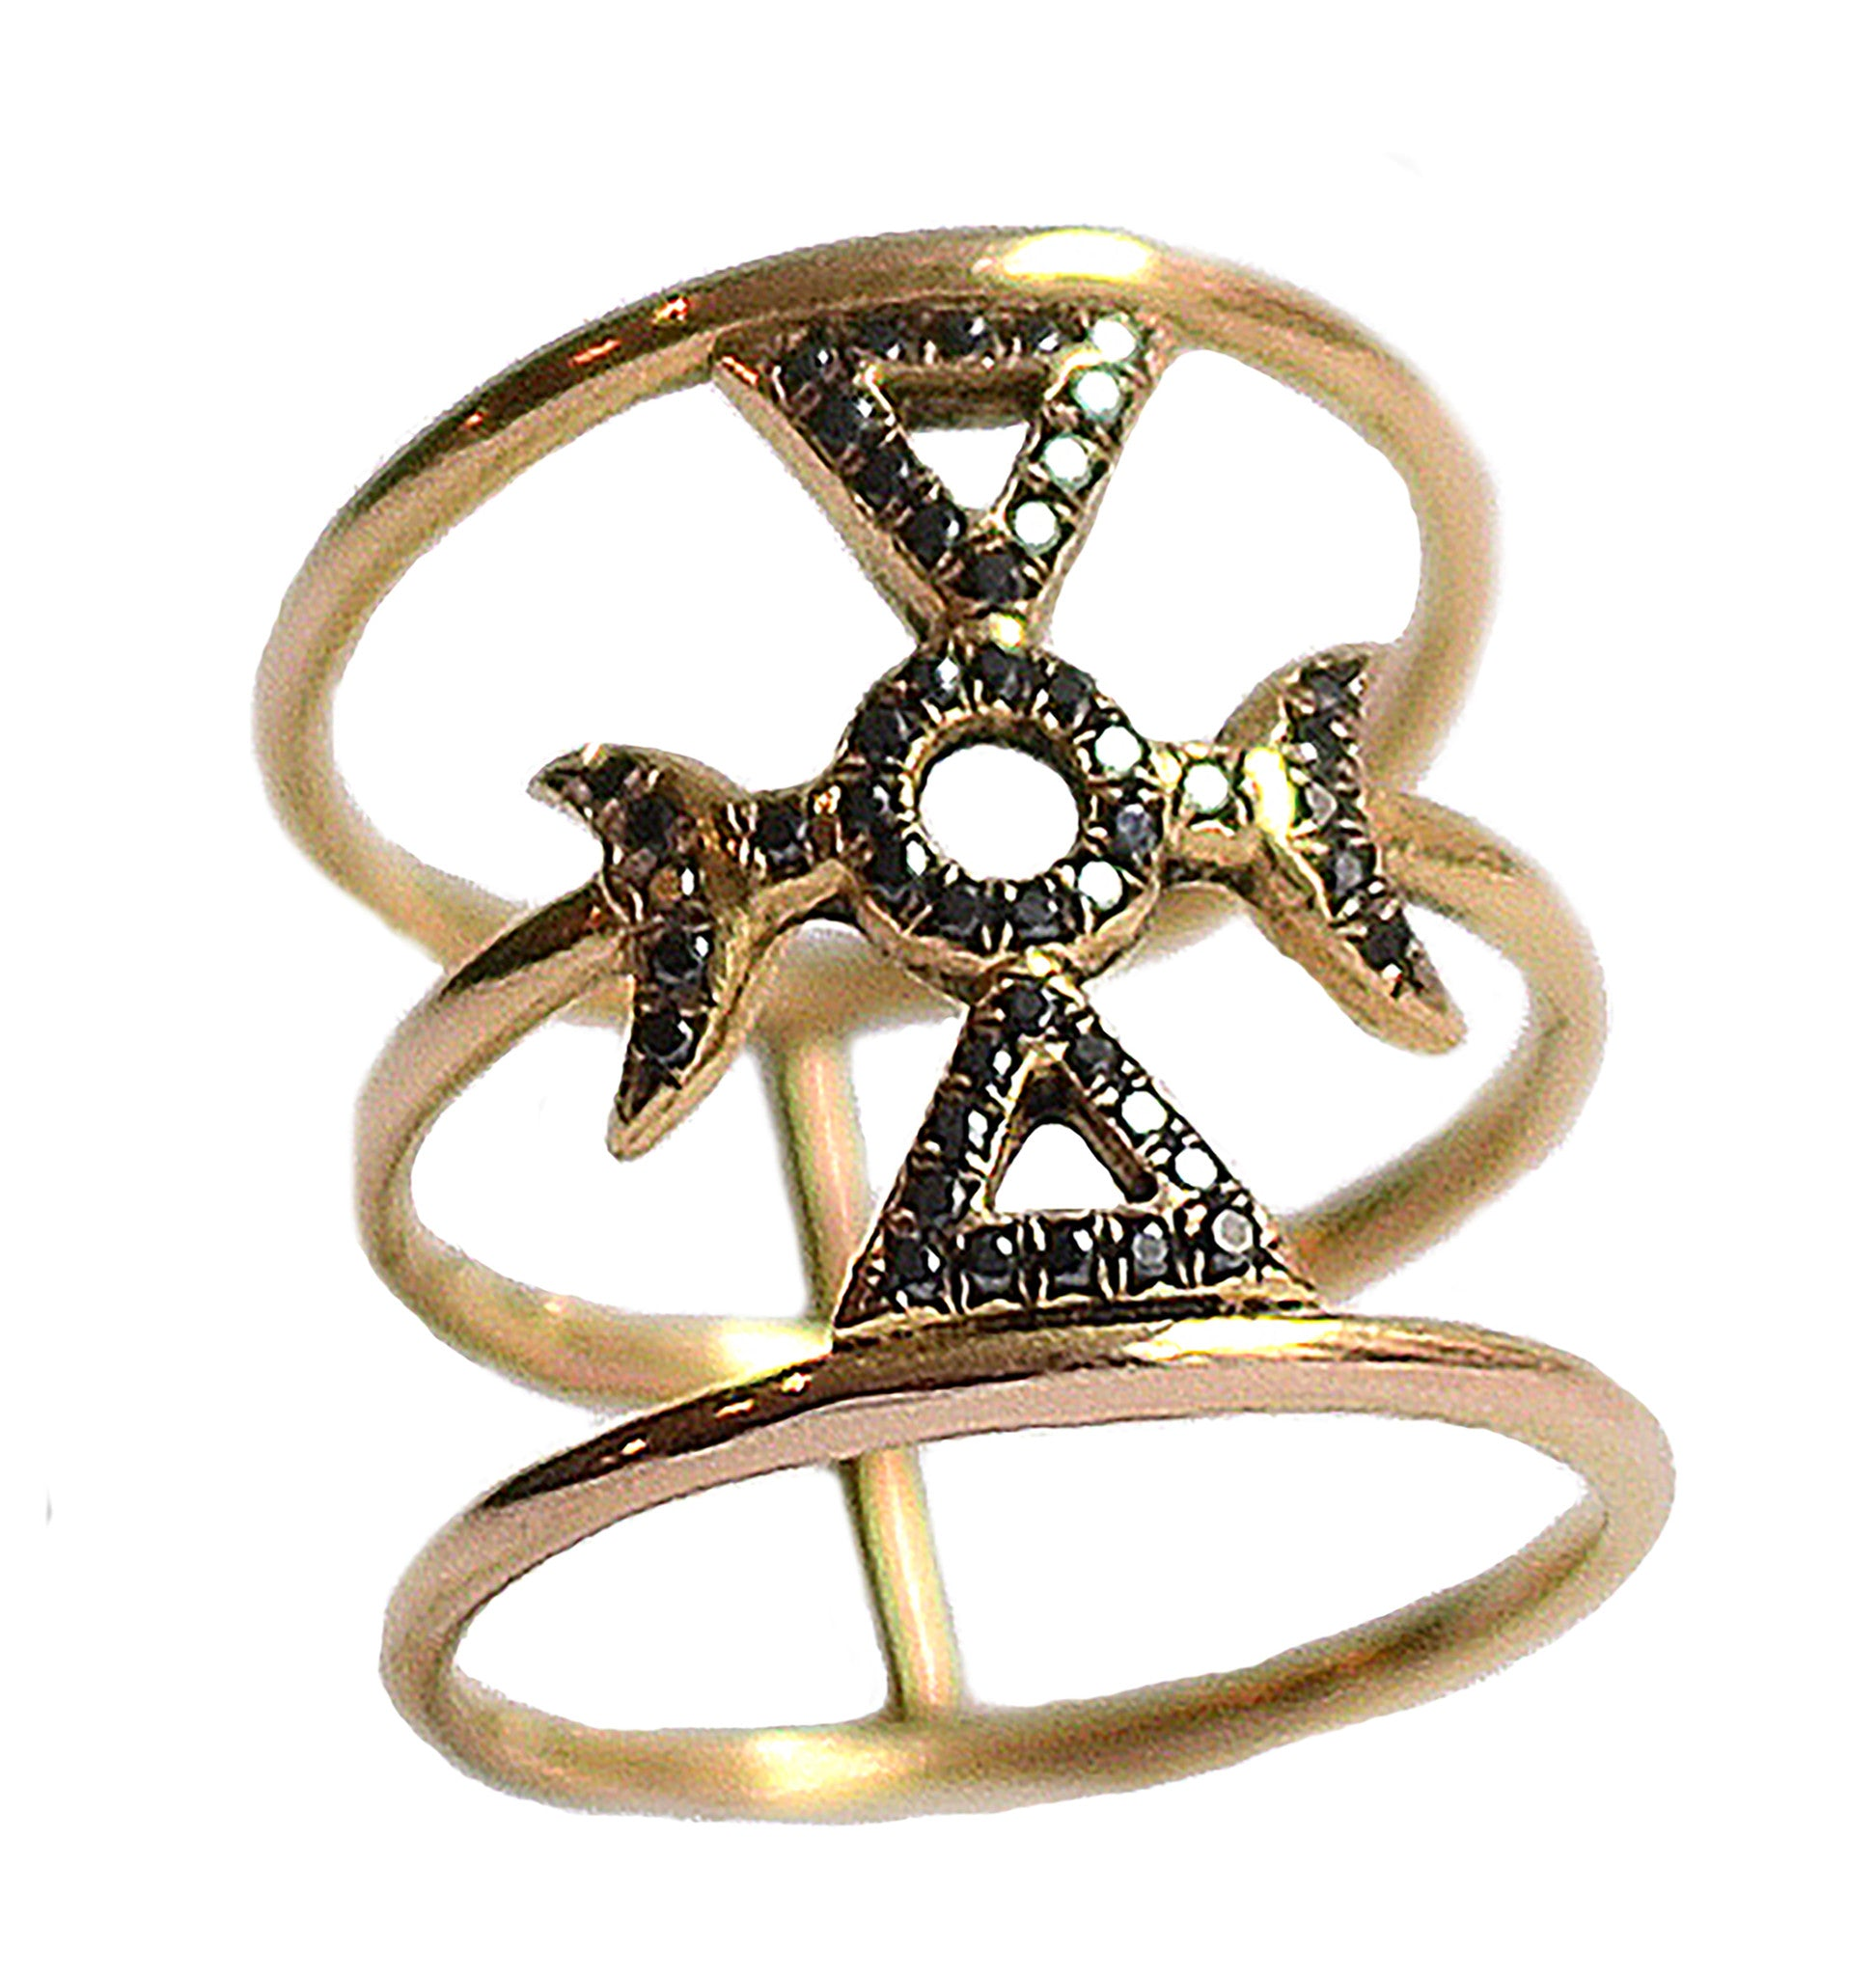 Auspicious Diamond Moon Ring Wendy Nichol Fine Jewelry Designer Mason Symbol solid 14k Gold Yellow Rose White Black Diamonds Handmade in NYC New York City Barneys Barney's Diamond Symbol Cage Magic Magick Witch Ring